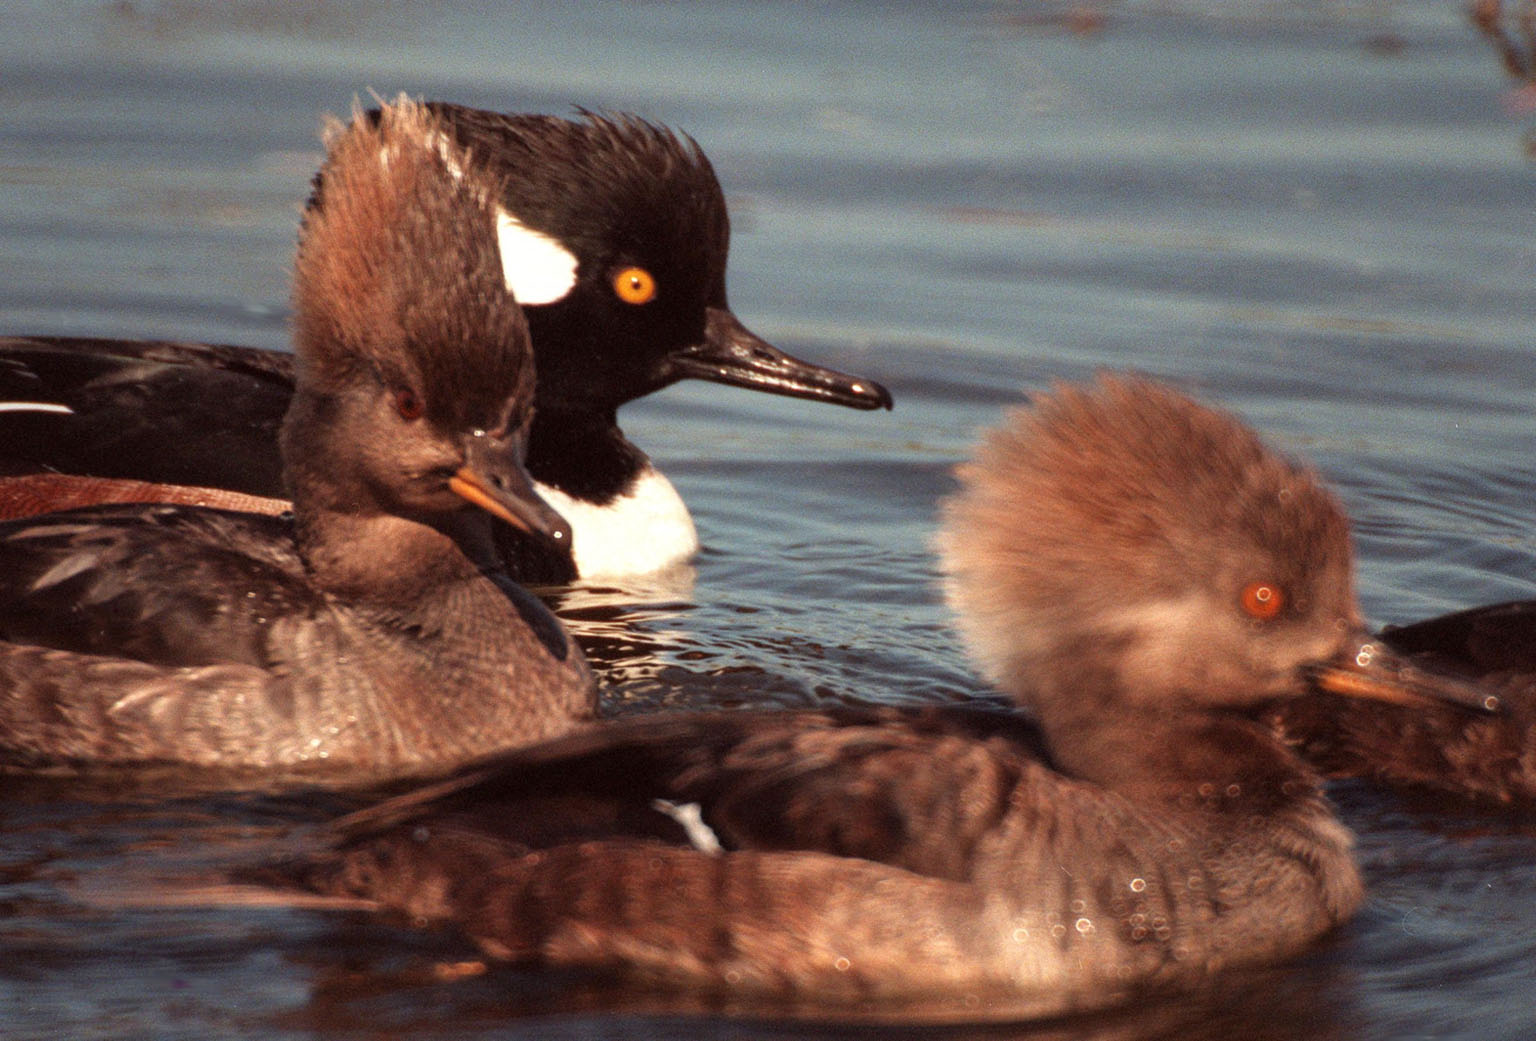 KENNEDY SPACE CENTER, FLA. -- A male and two female hooded mergansers swim in the waters of the Merritt Island National Wildlife Refuge at Kennedy Space Center. The male displays its distinctive fan-shaped, black-bordered crest. Usually found from Alaska and Canada south to Nebraska, Oregon and Tennessee, hooded mergansers winter south to Mexico and the Gulf Coast, including KSC. The open water of the refuge provides wintering areas for 23 species of migratory waterfowl, as well as a year-round home for great blue herons, great egrets, wood storks, cormorants, brown pelicans and other species of marsh and shore birds. The 92,000-acre refuge is also habitat for more than 310 species of birds, 25 mammals, 117 fishes and 65 amphibians and reptiles